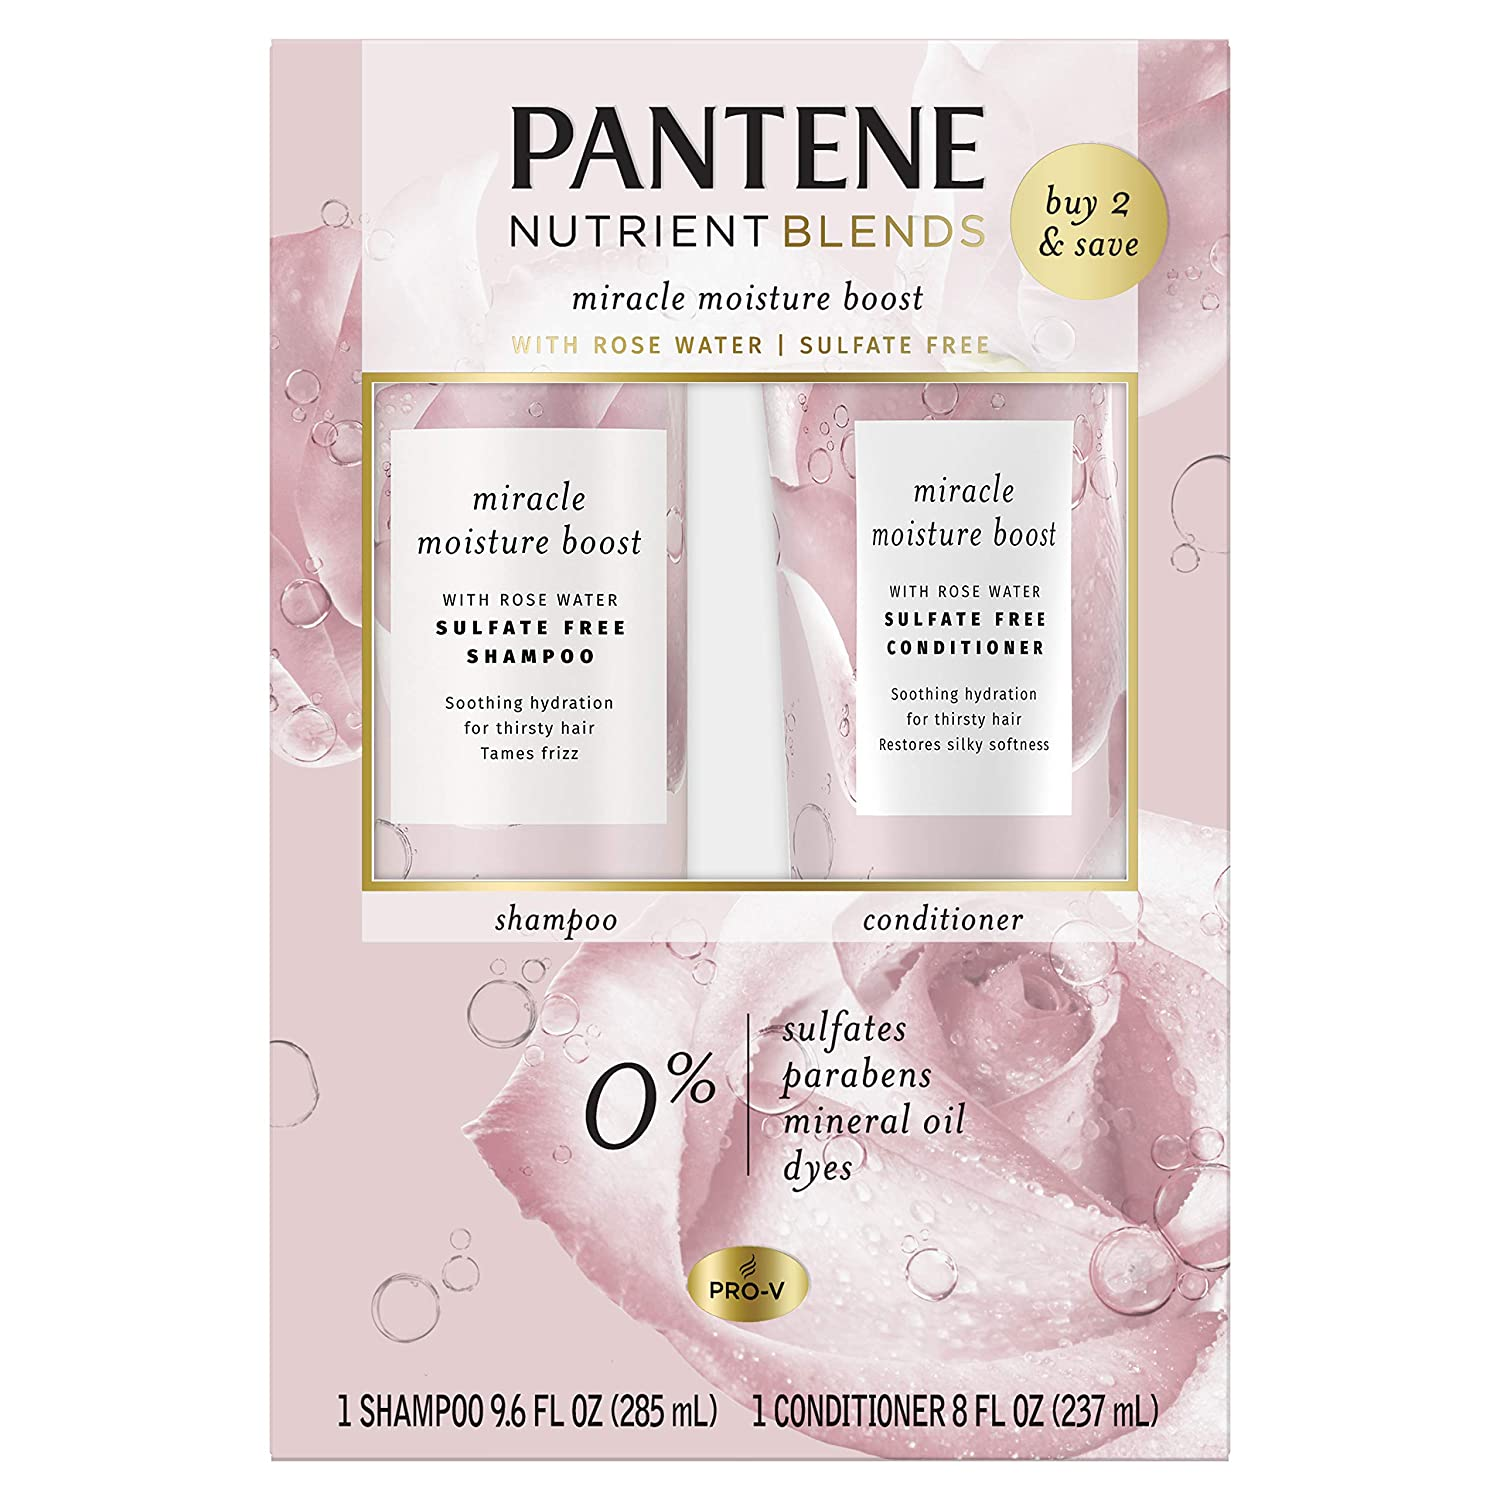 Pantene Nutrient Blends Miracle Moisture Boost Rose Water Shampoo And Conditioner Dual Pack For Dry Hair, Sulfate Free